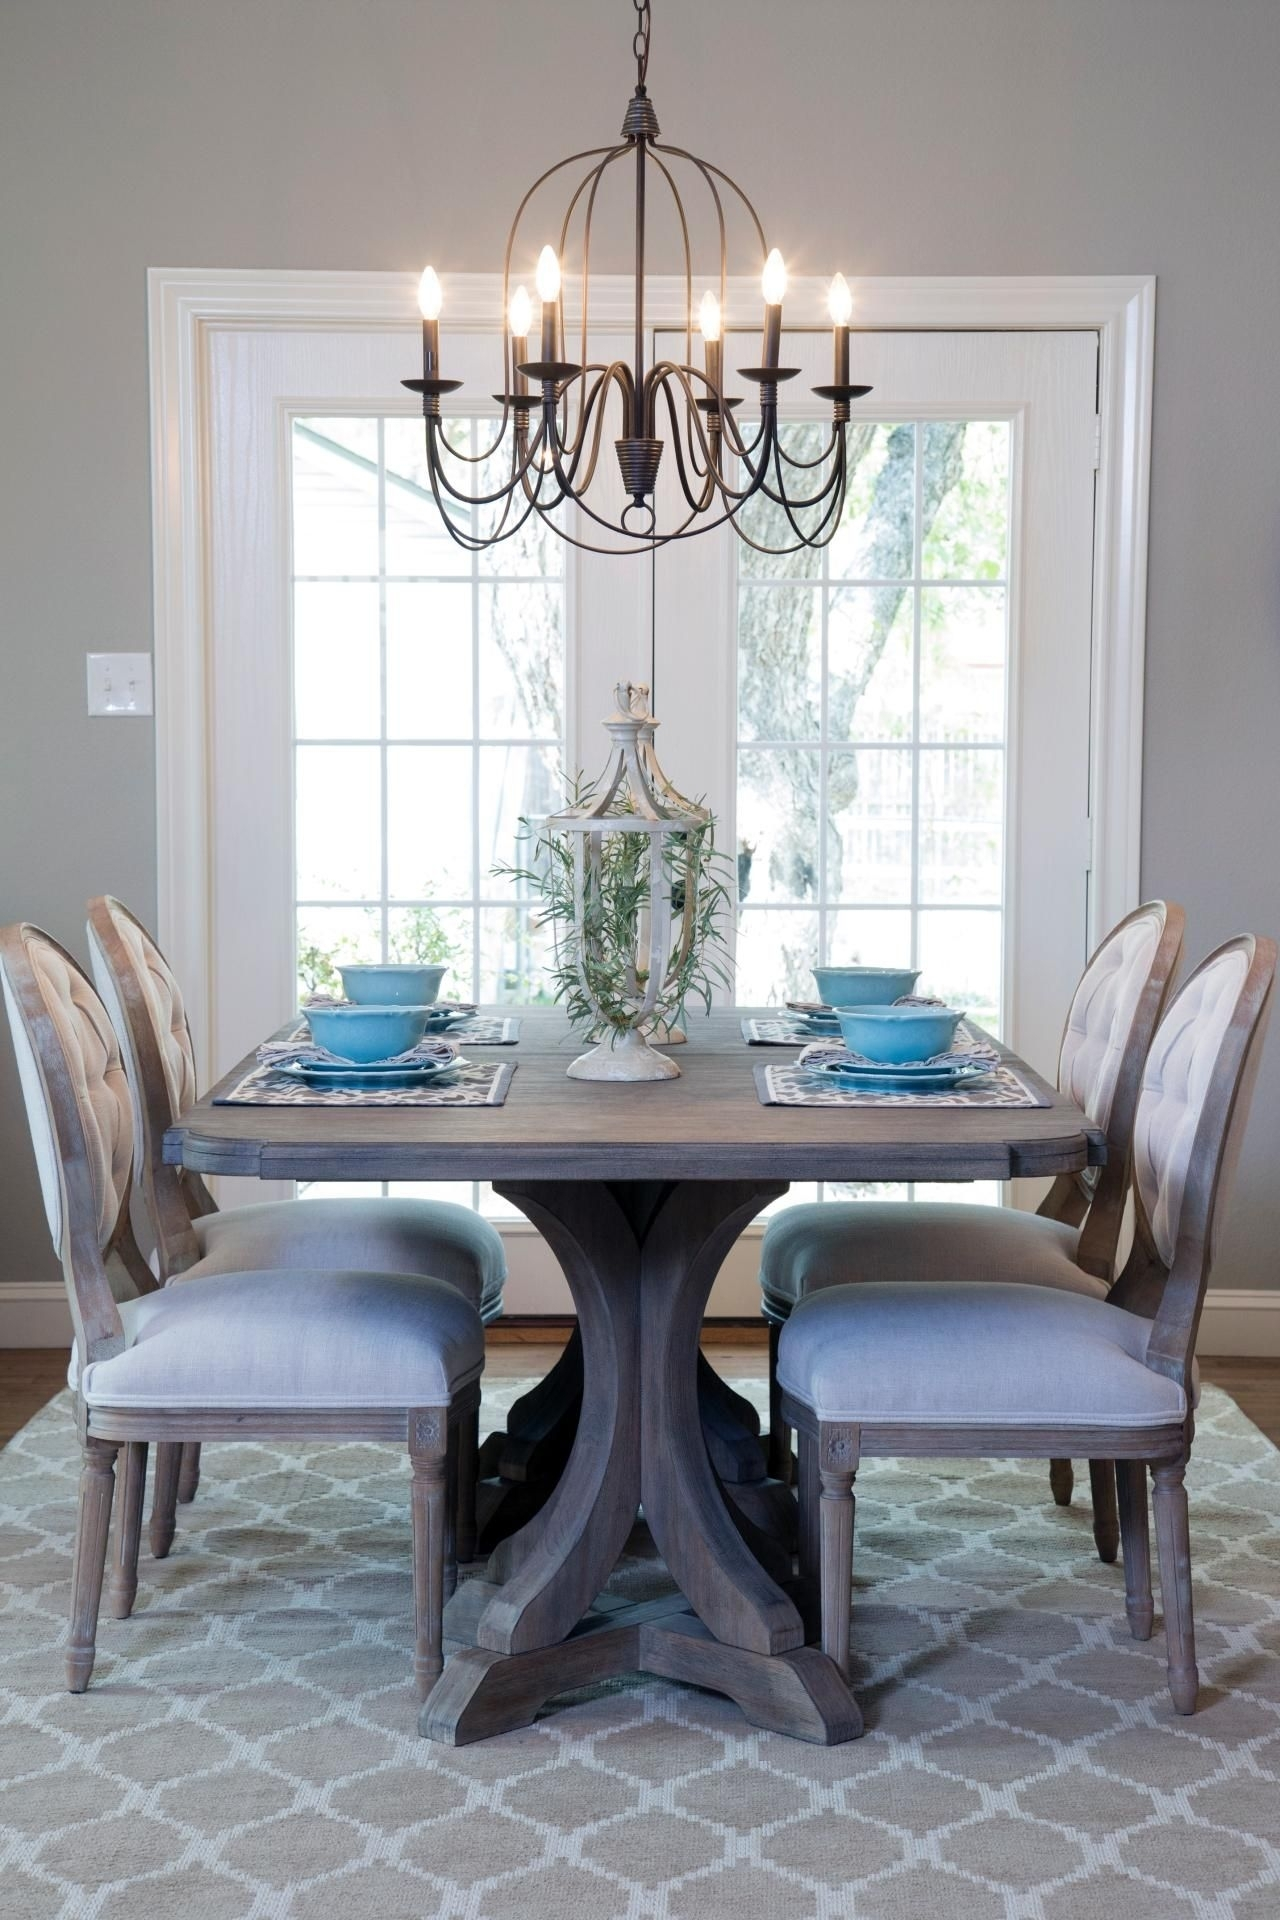 Excellent Dining Room Chandelier 17 Good Beautiful Small Ideas In Living Room Table Lights (View 12 of 15)